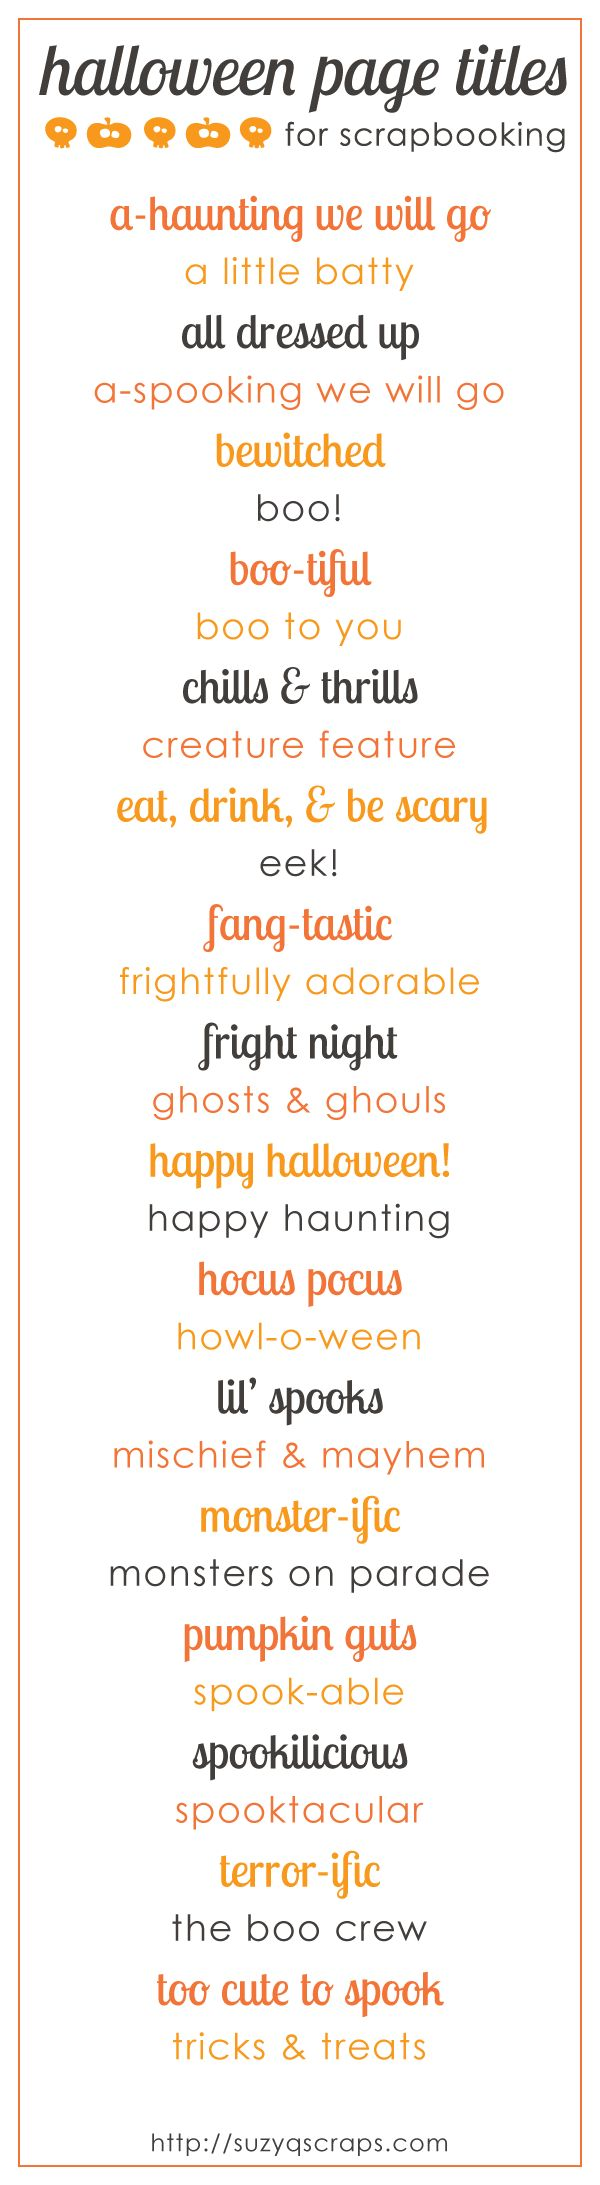 Pages by    Halloween Ideas SuzyQ   twitter scrapbooking a    store Scrapbook  Storytelling   Simple    users Scrapbook   Page  uk Halloween Scrapbook Scrapbook Halloween Scraps